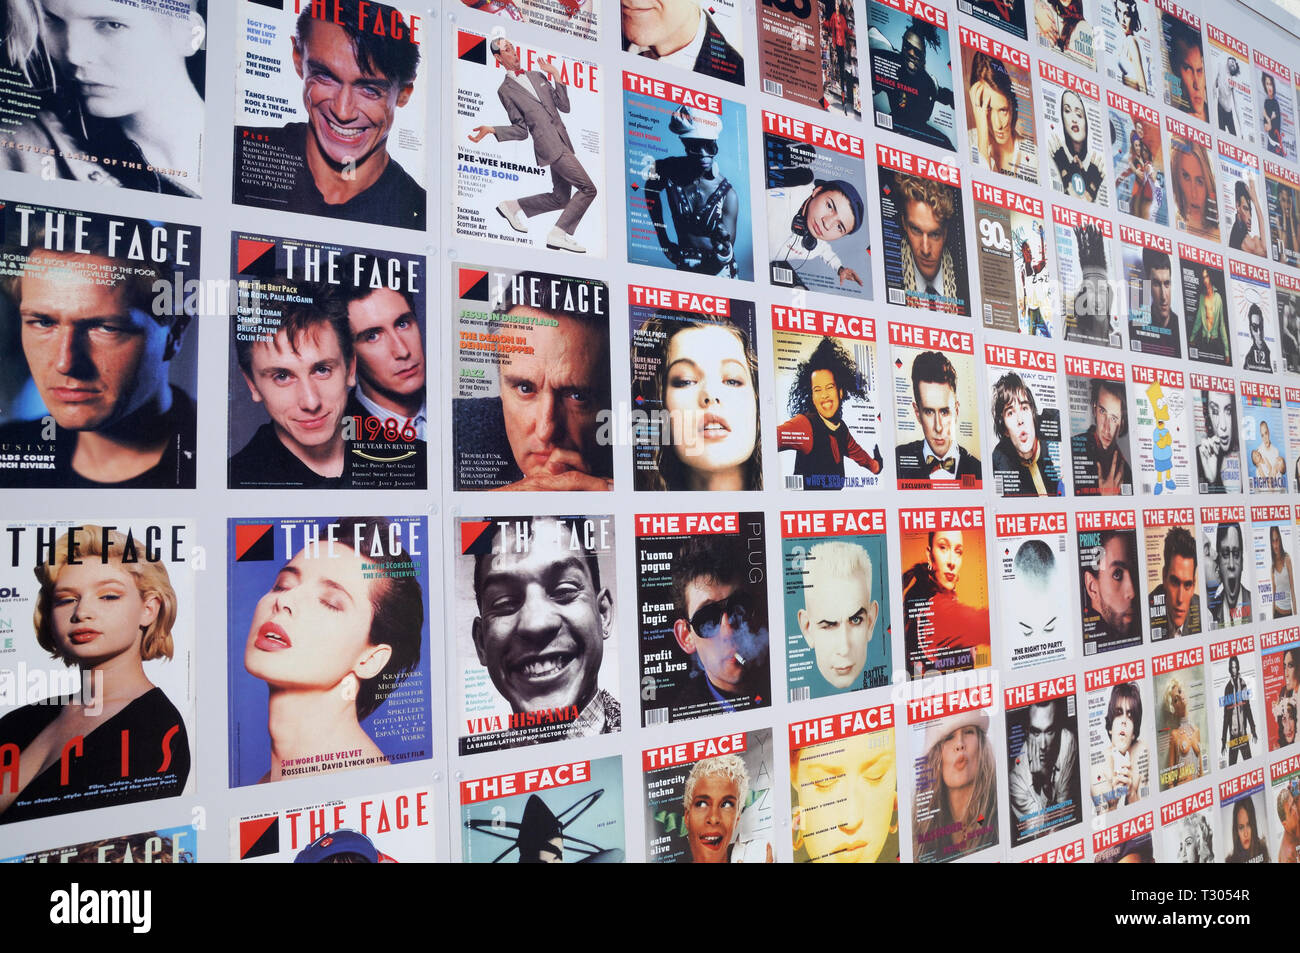 Iconic front cover portraits of THE FACE magazine featuring movers and shakers from music, fashion, film and entertainment, King's Cross, London, UK - Stock Image